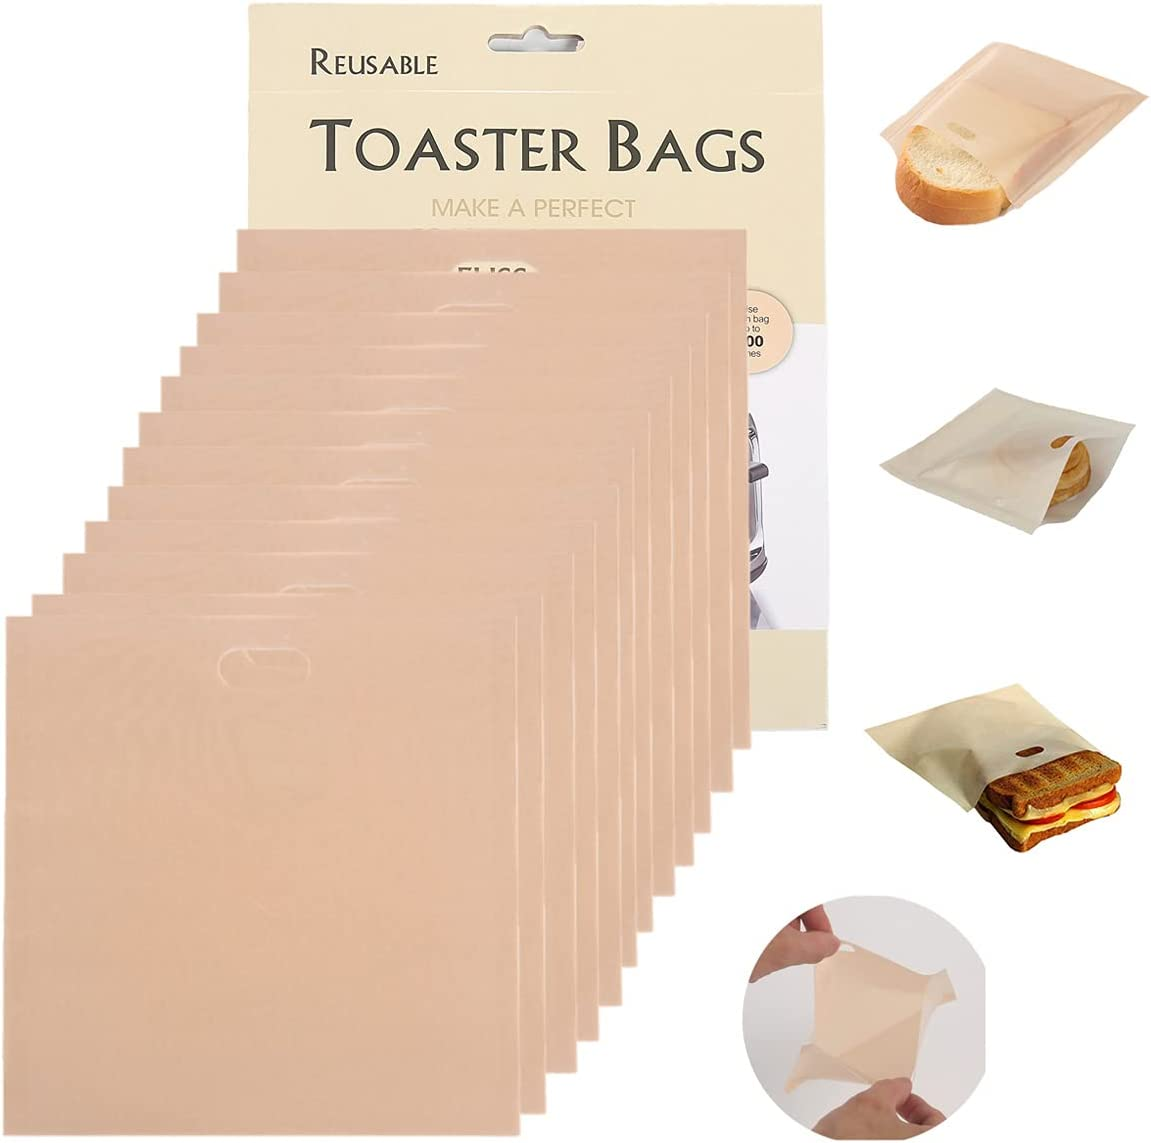 Toaster Bags, 12pcs,Reusable Washable Non-Stick,Heat Resistant Sandwich Bag Pockets for Grilled Cheese,Pizza,Chicken (Large)